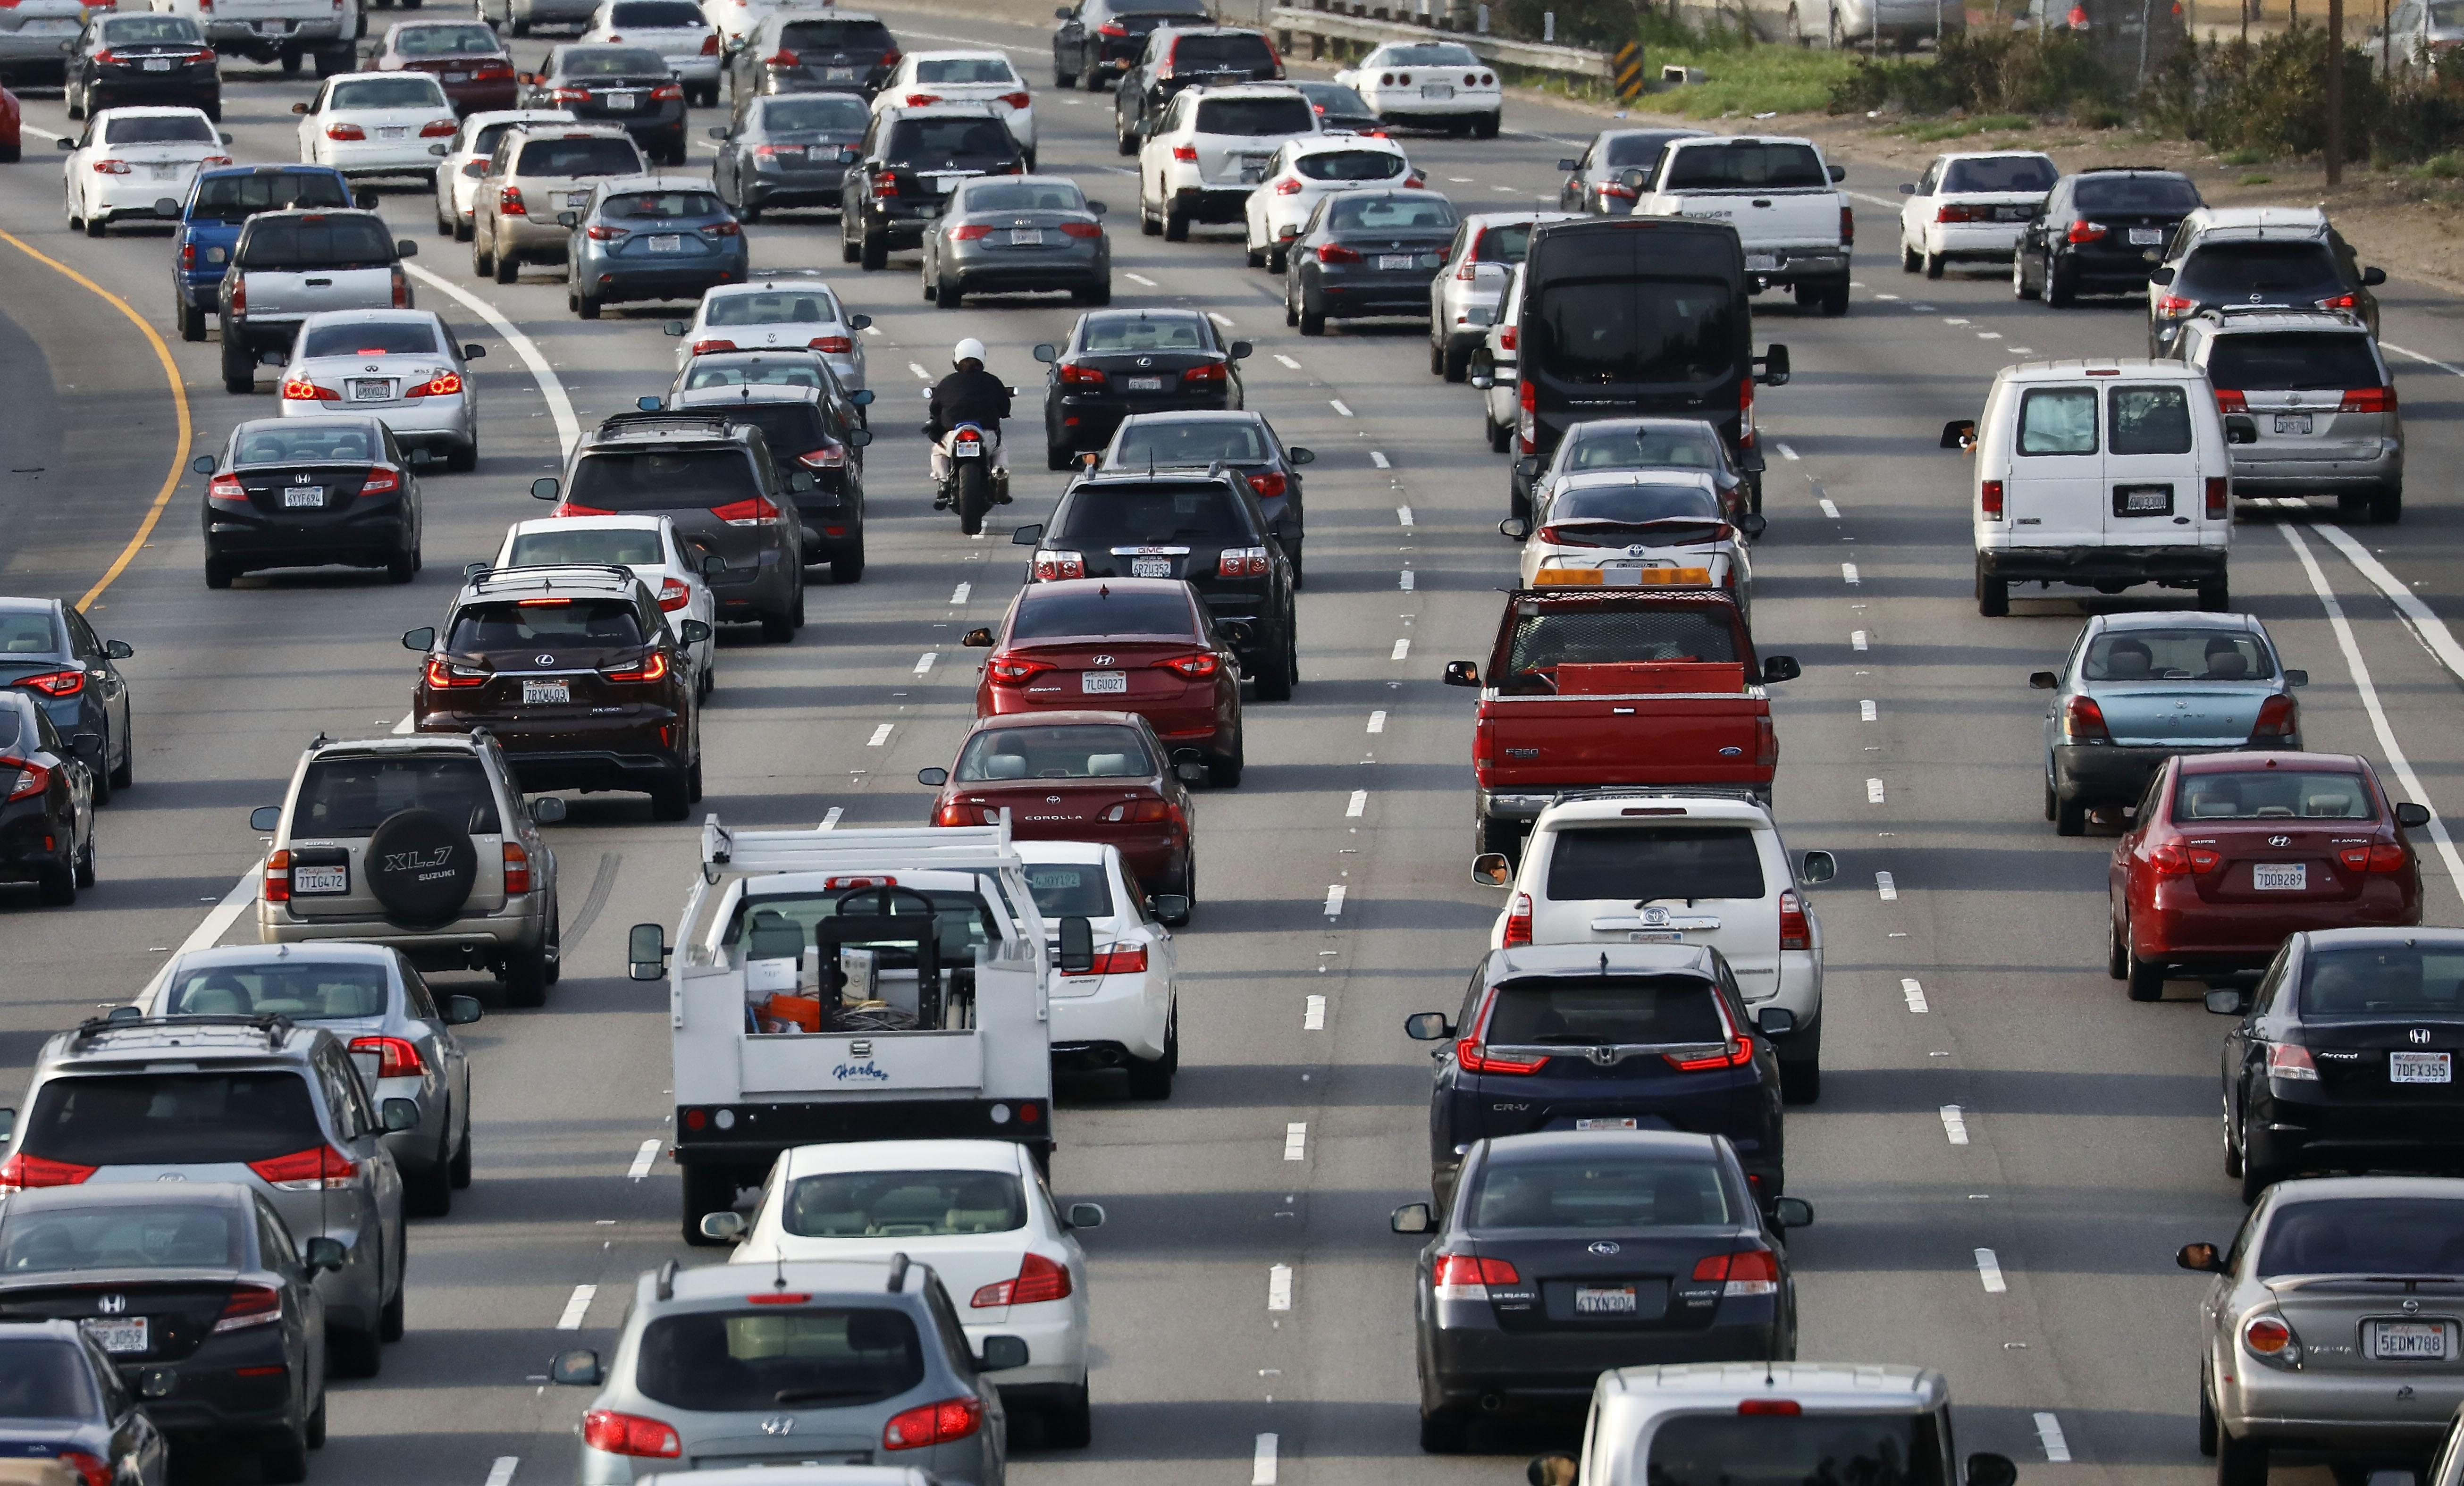 Cars sitting in traffic on an LA freeway